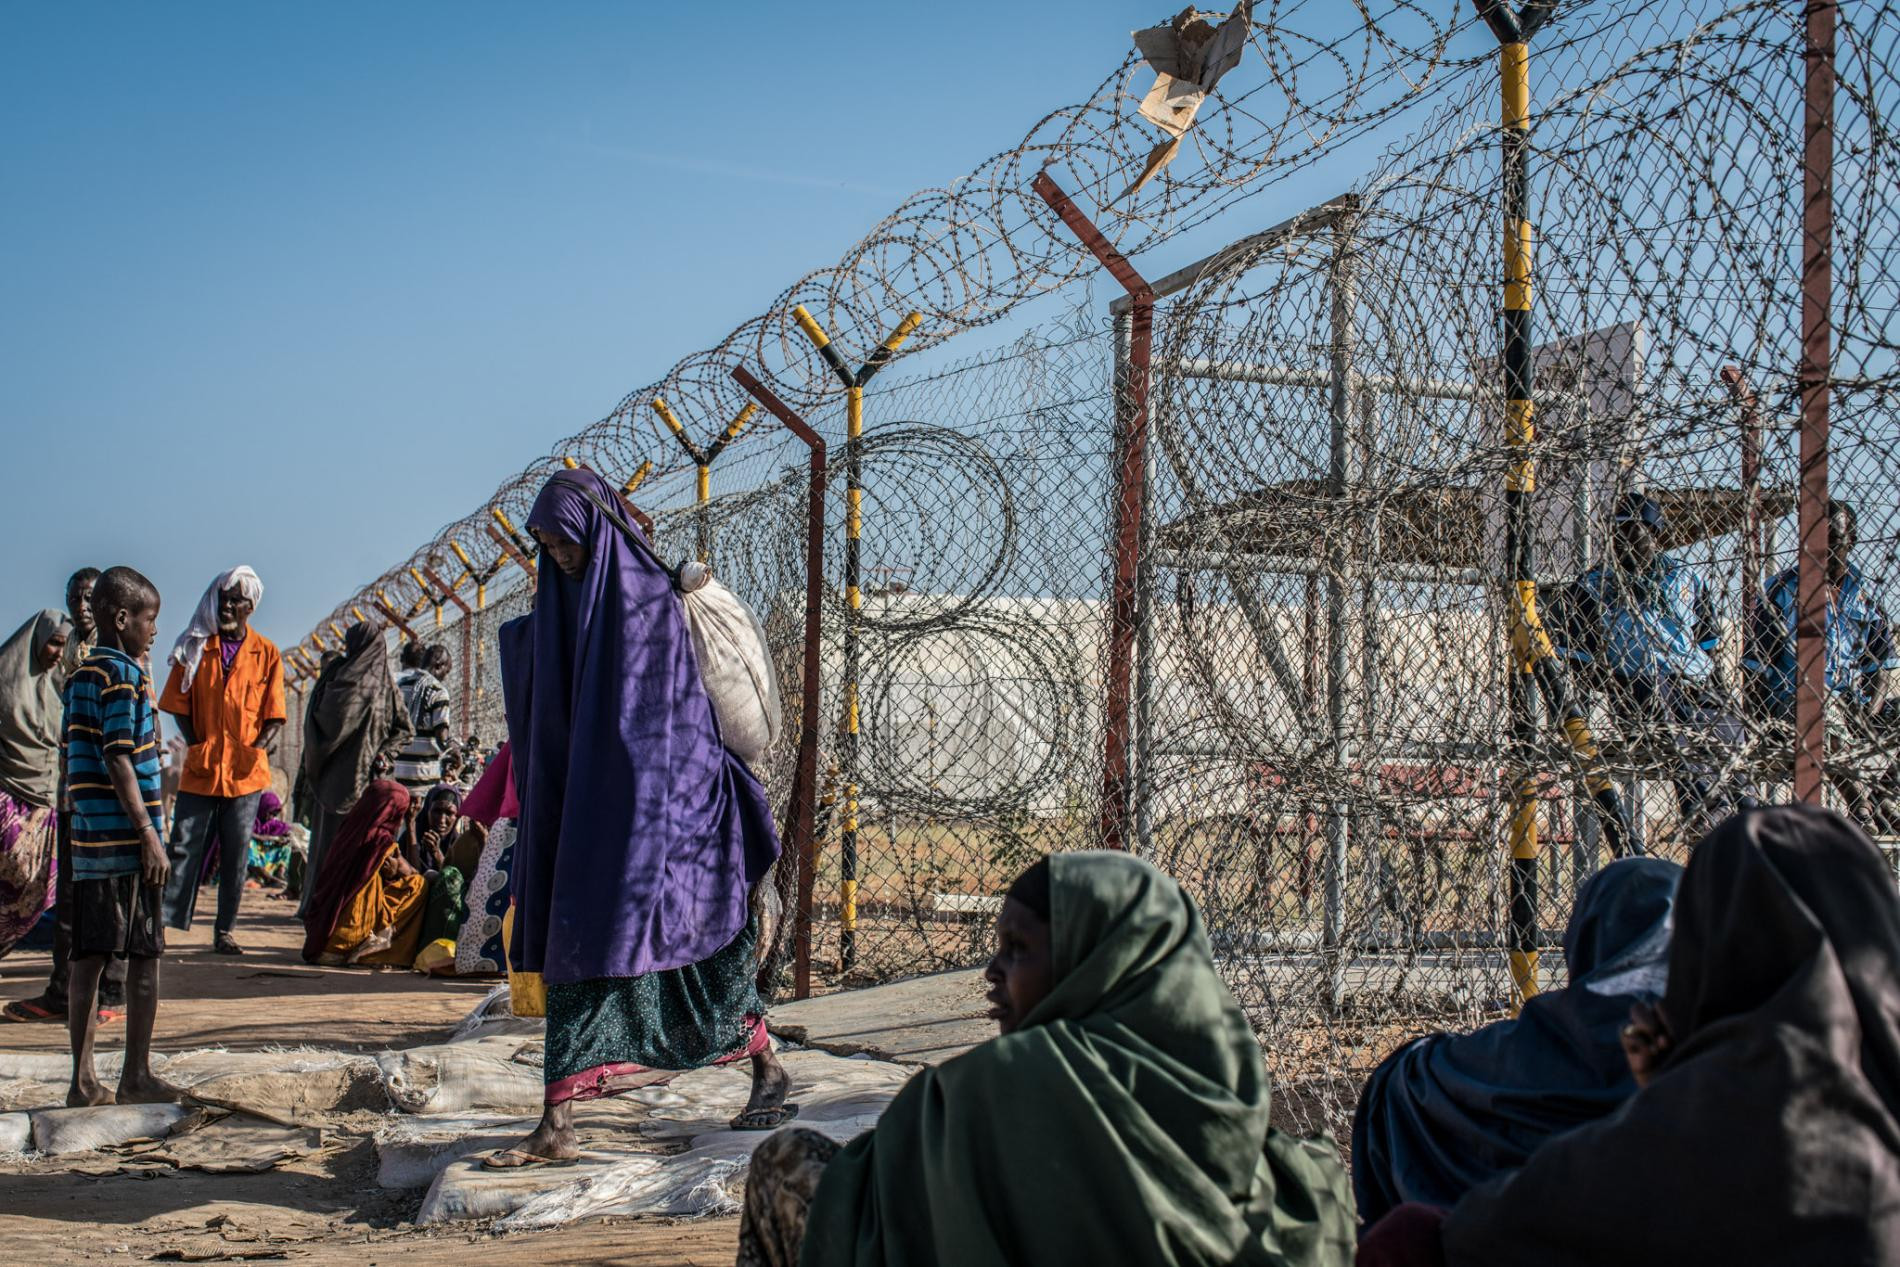 A woman leaves a food depot in Dadaab refugee camp, in northern Kenya, after receiving her rations. The population in Dadaab, estimated at nearly 220,000, has risen and fallen with droughts in the Horn of Africa. Along with droughts, famine, and desertification, decades of civil war have pushed tens of thousands of Somalis across Kenya's border into Dadaab.